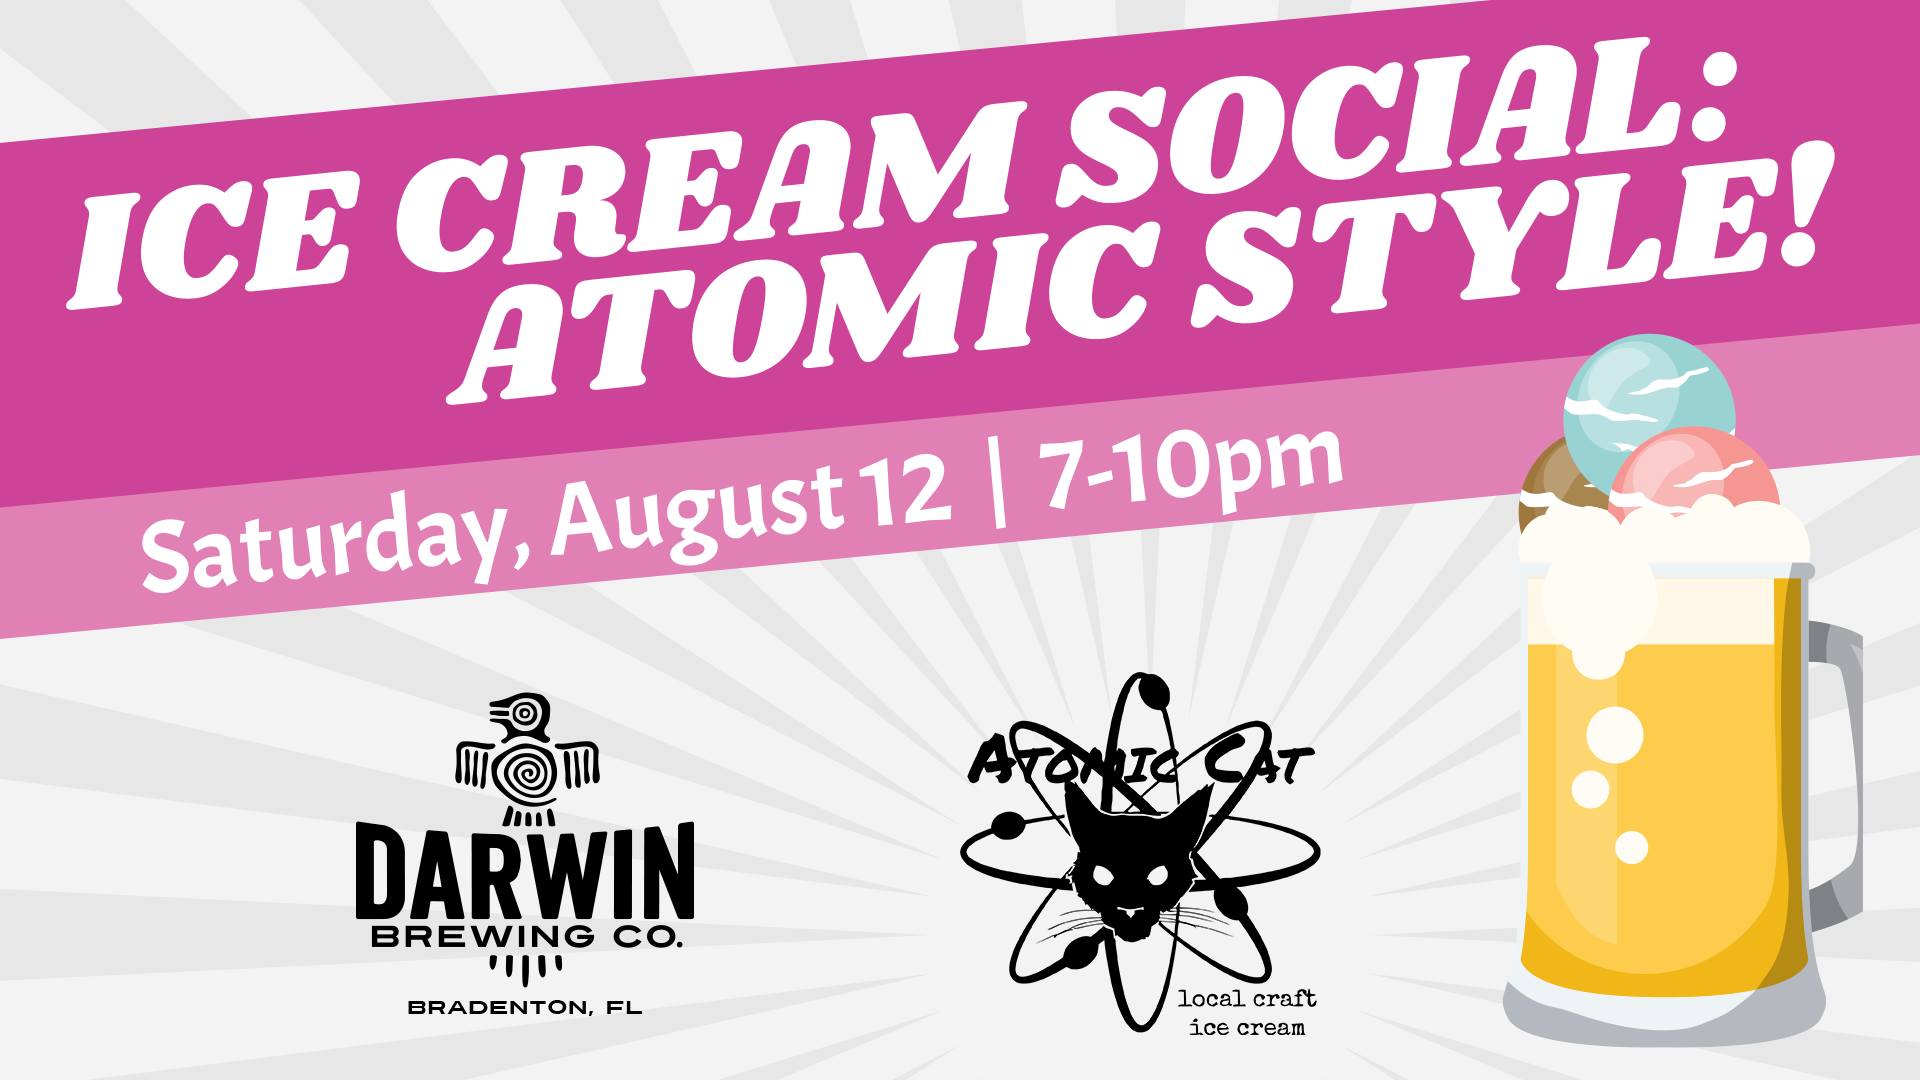 Darwin + Atomic Cat = Craft (Beer x Ice Cream) Float Explosion